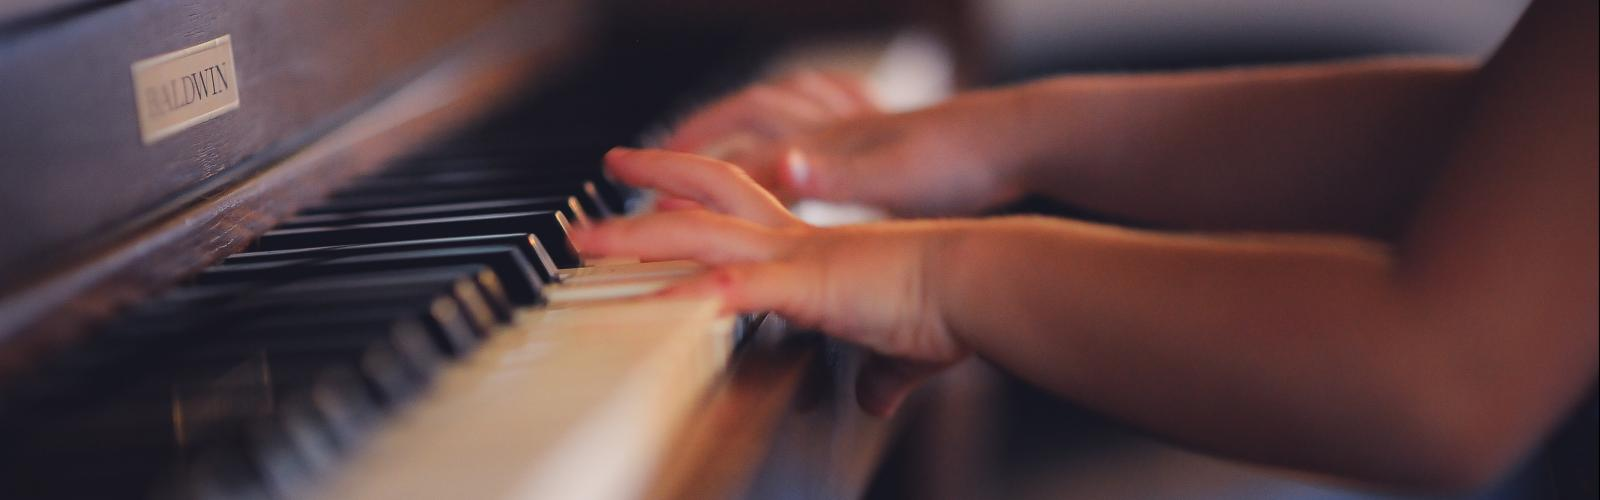 Young student's hands at piano, stock image (Unsplash)